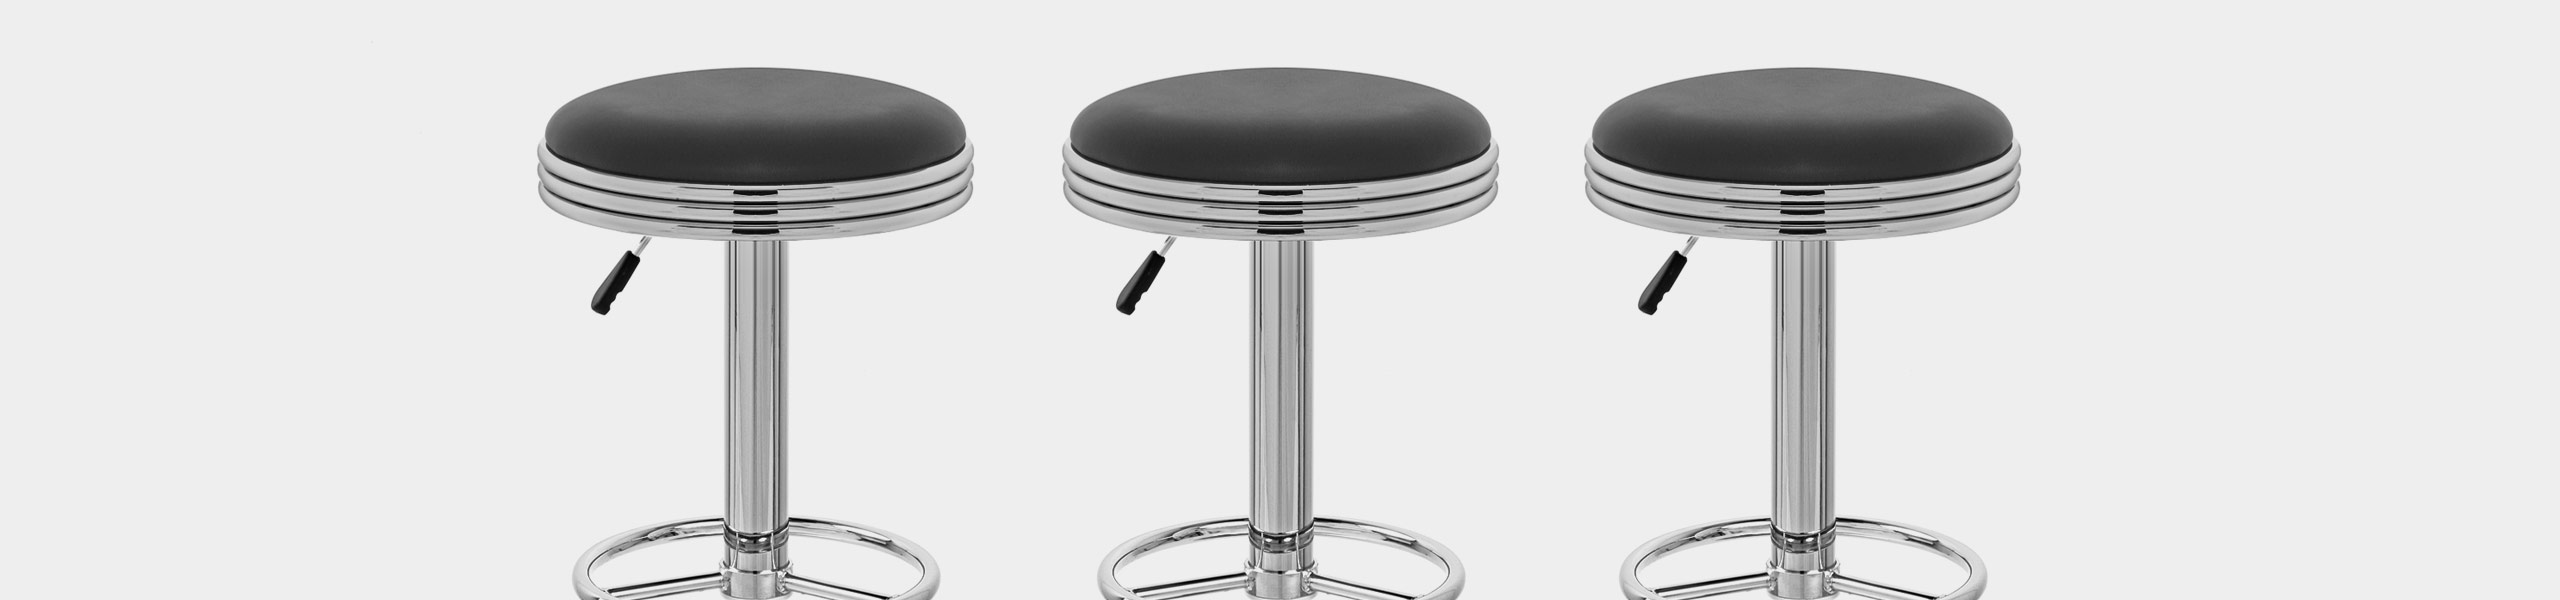 Java Diner Stool Black Video Banner